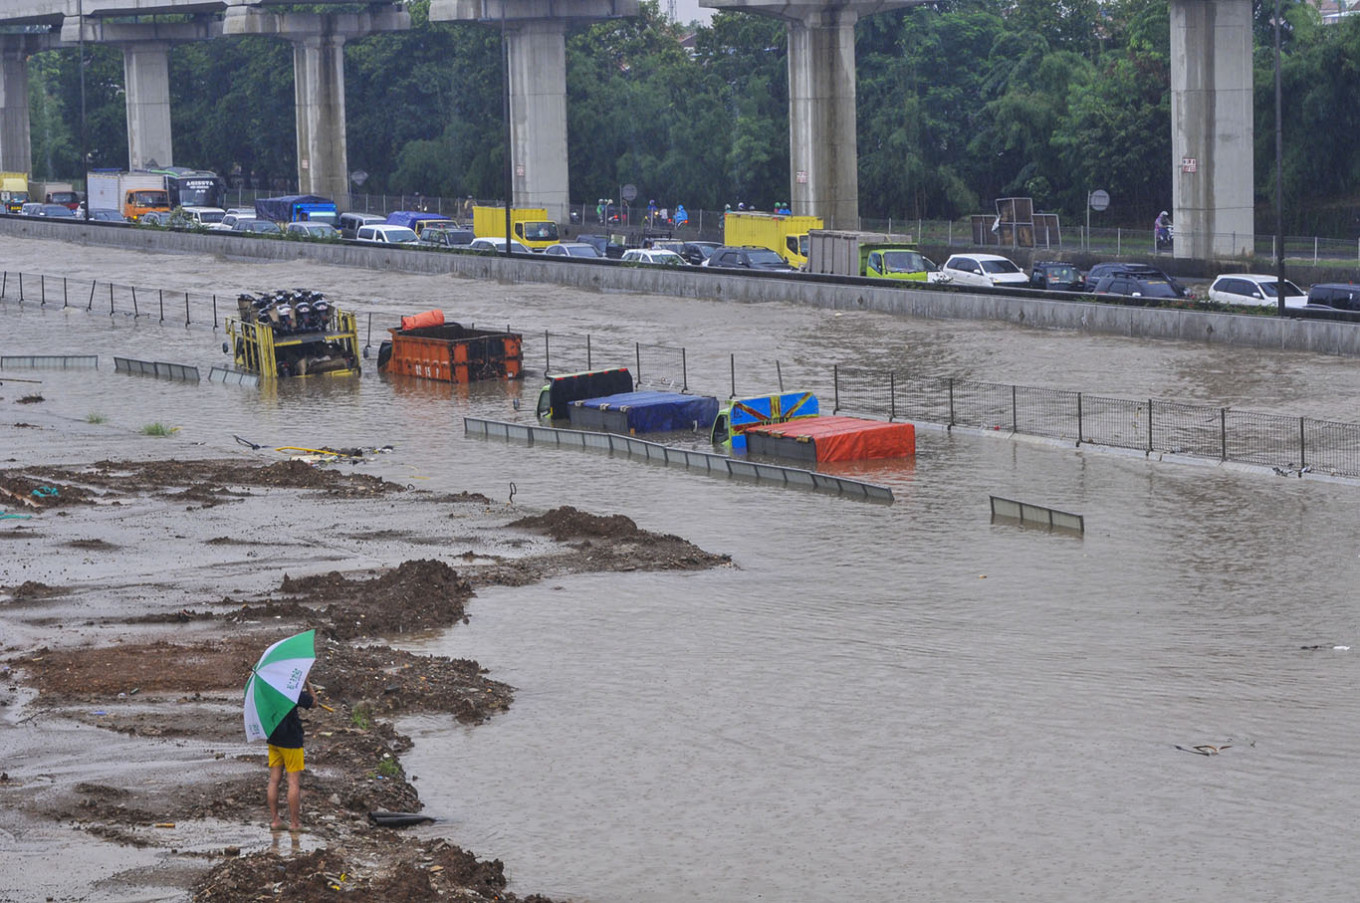 20,000 trucks serving Tanjung Priok port can't operate amid floods: Association